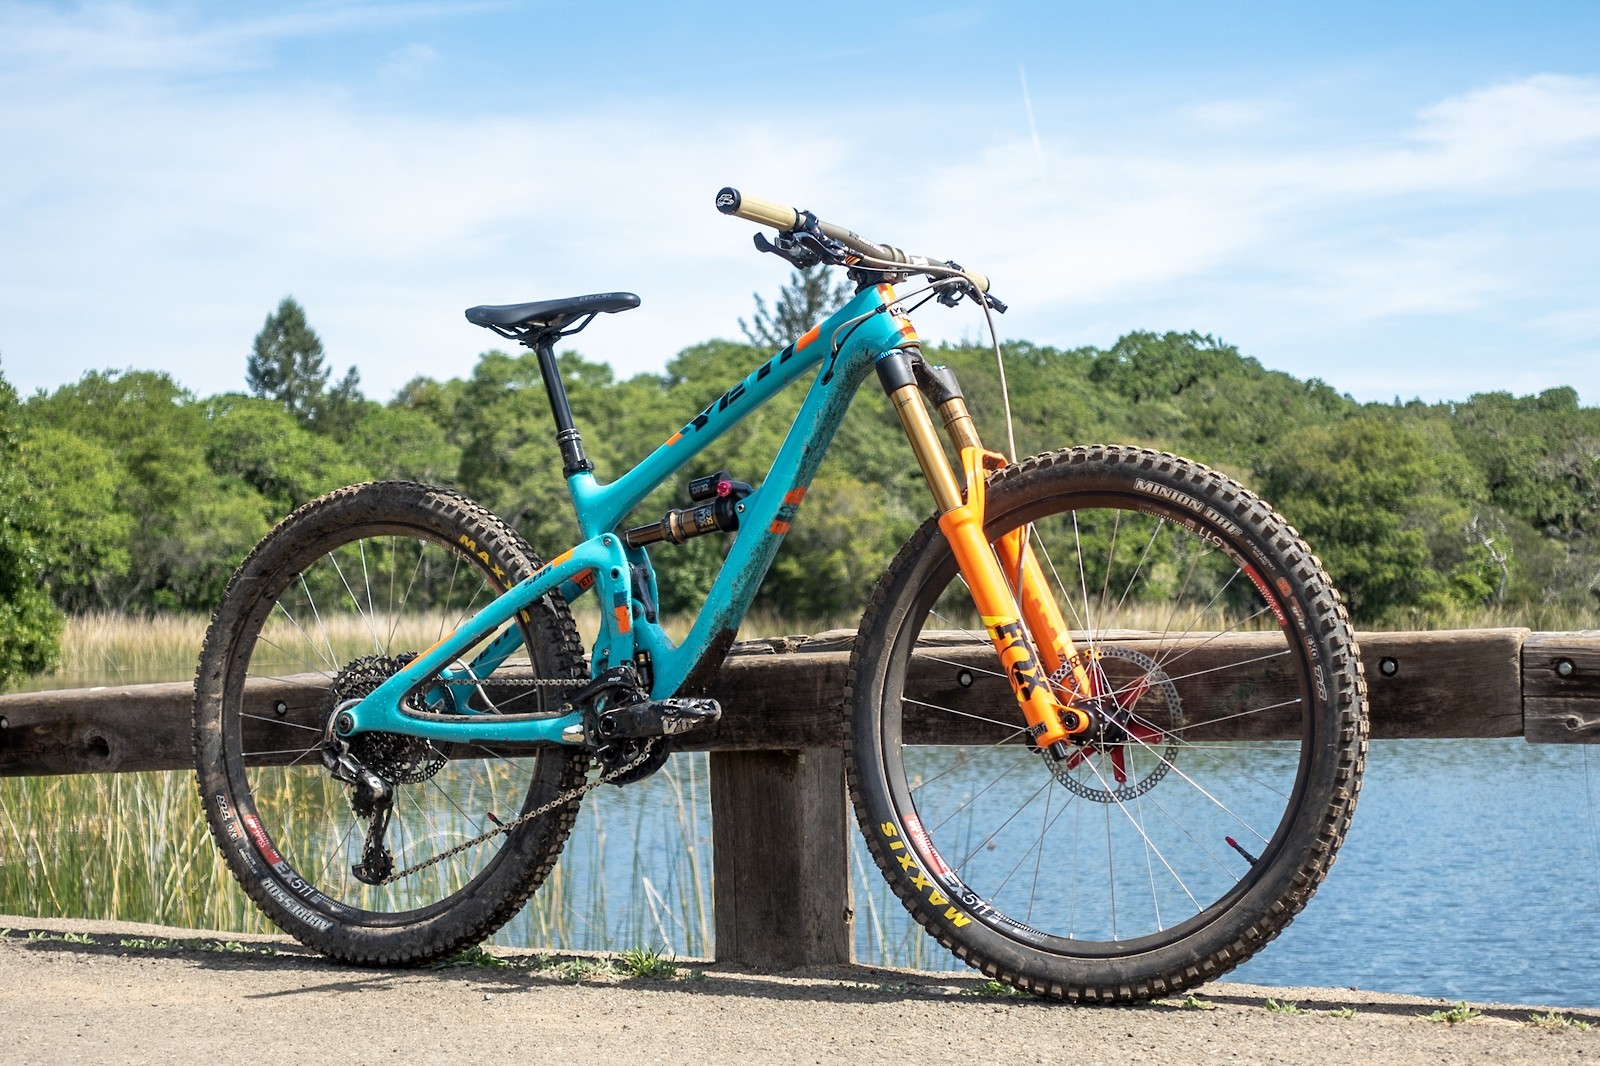 2018 Yeti SB6 Turq, with build pics